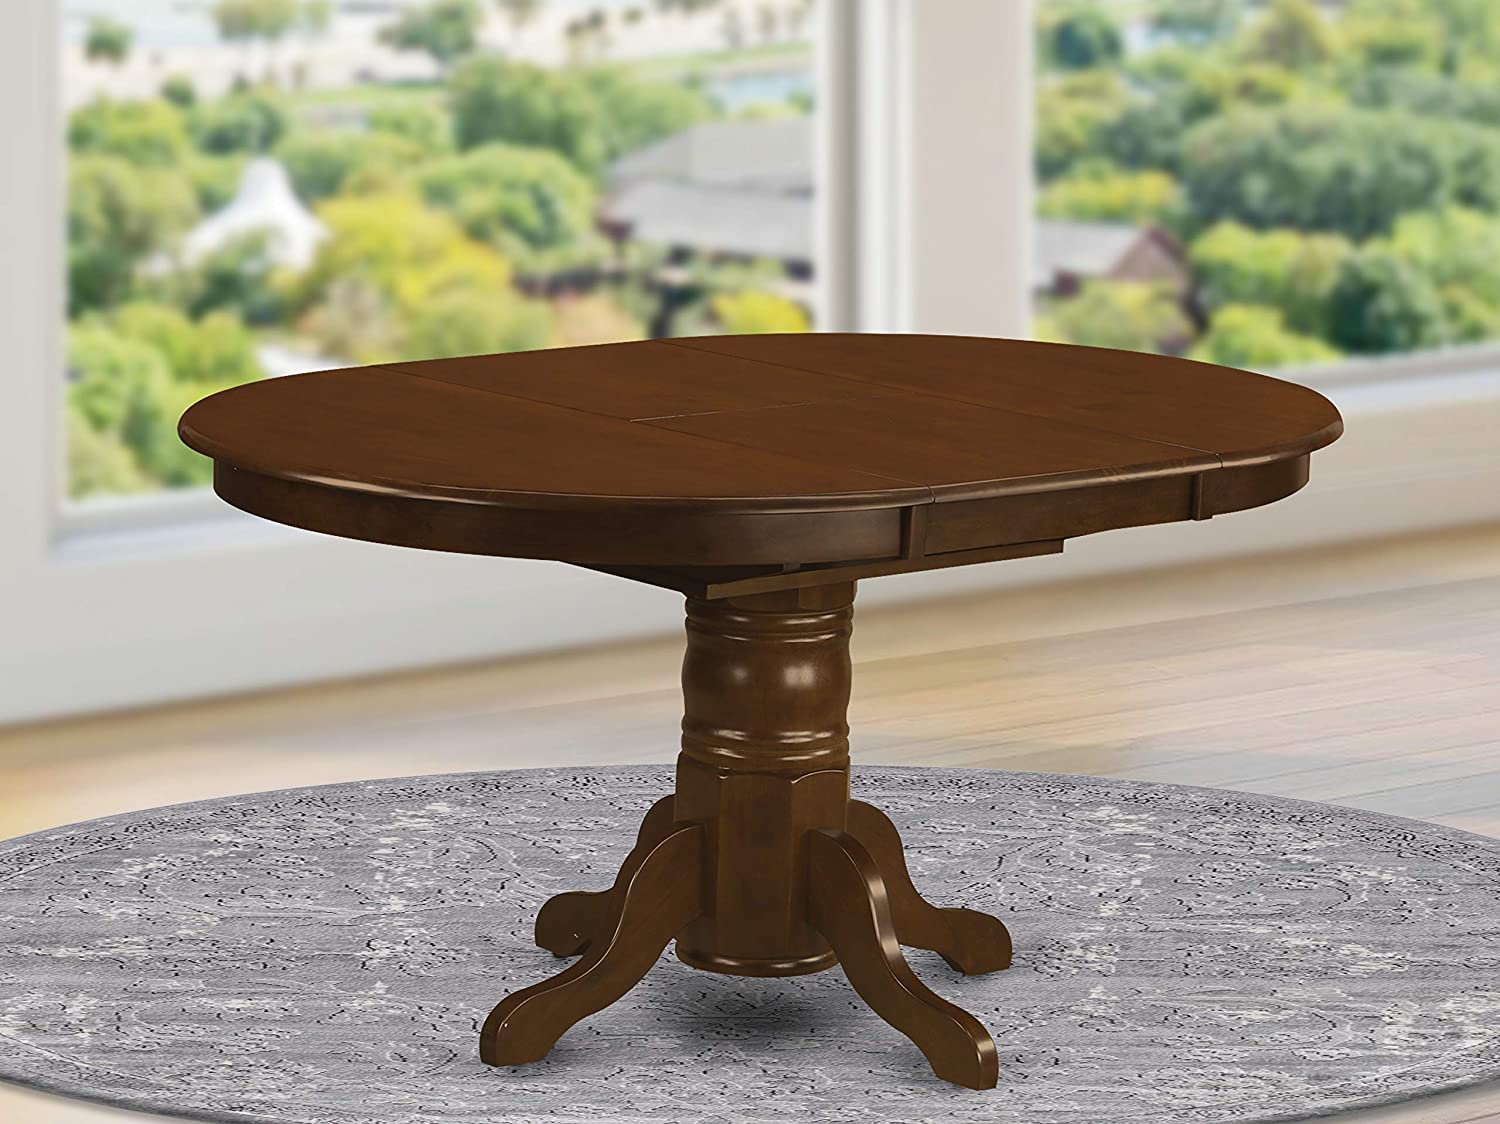 East West Furniture Butterfly Leaf Oval Dining Table   Espresso Table Top  and Espresso Finish Pedestal Legs Solid wood Frame Kitchen Table